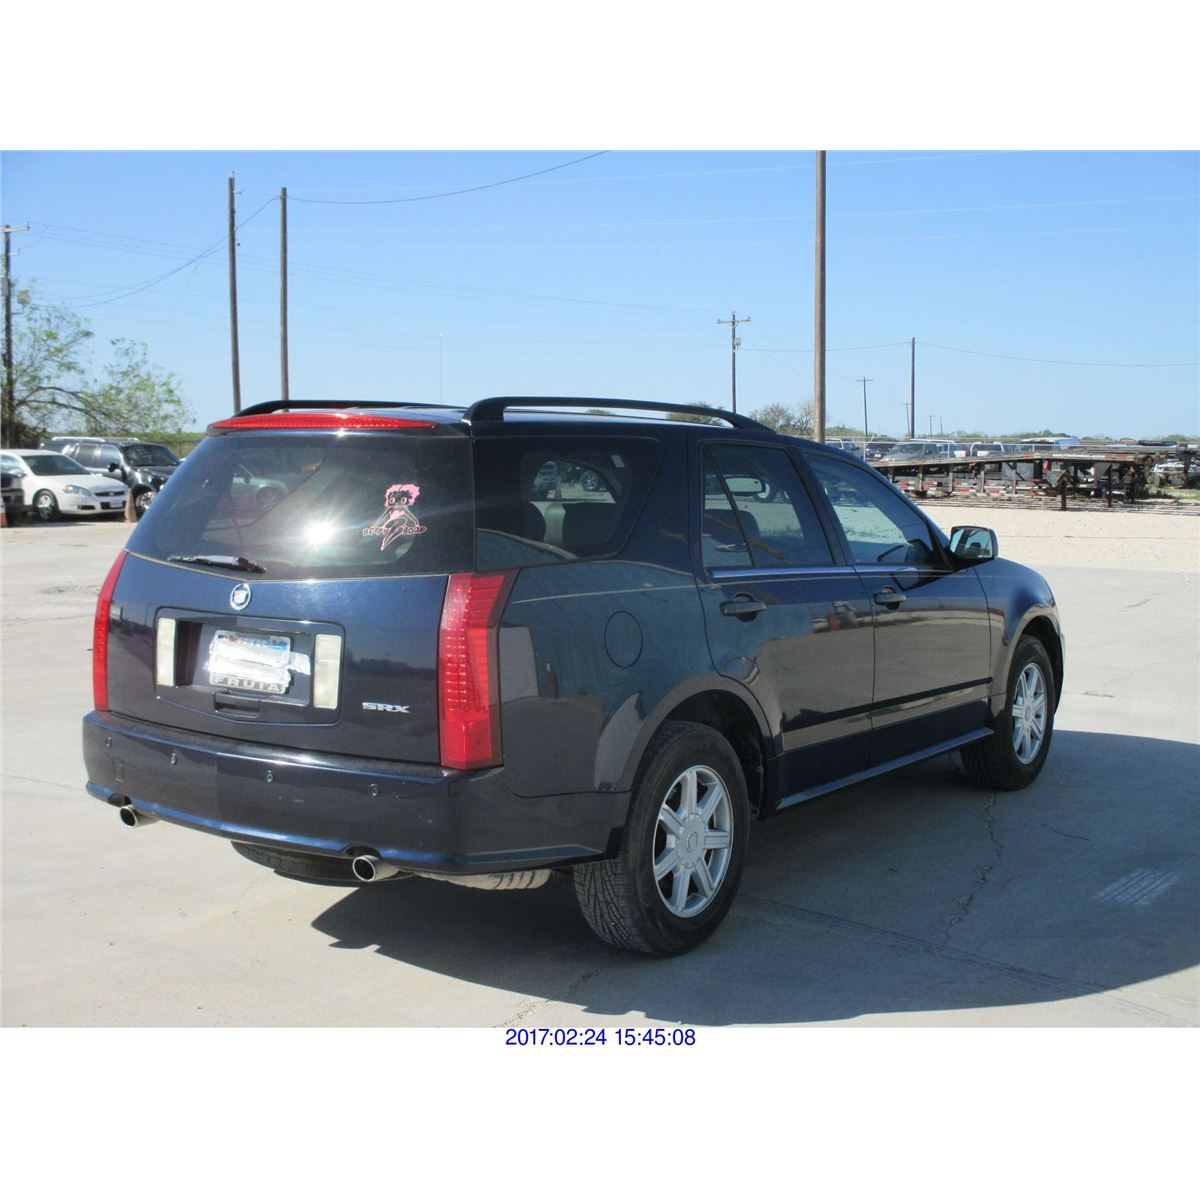 used cars for sale in victoria tx pre owned vehicles html autos weblog. Black Bedroom Furniture Sets. Home Design Ideas